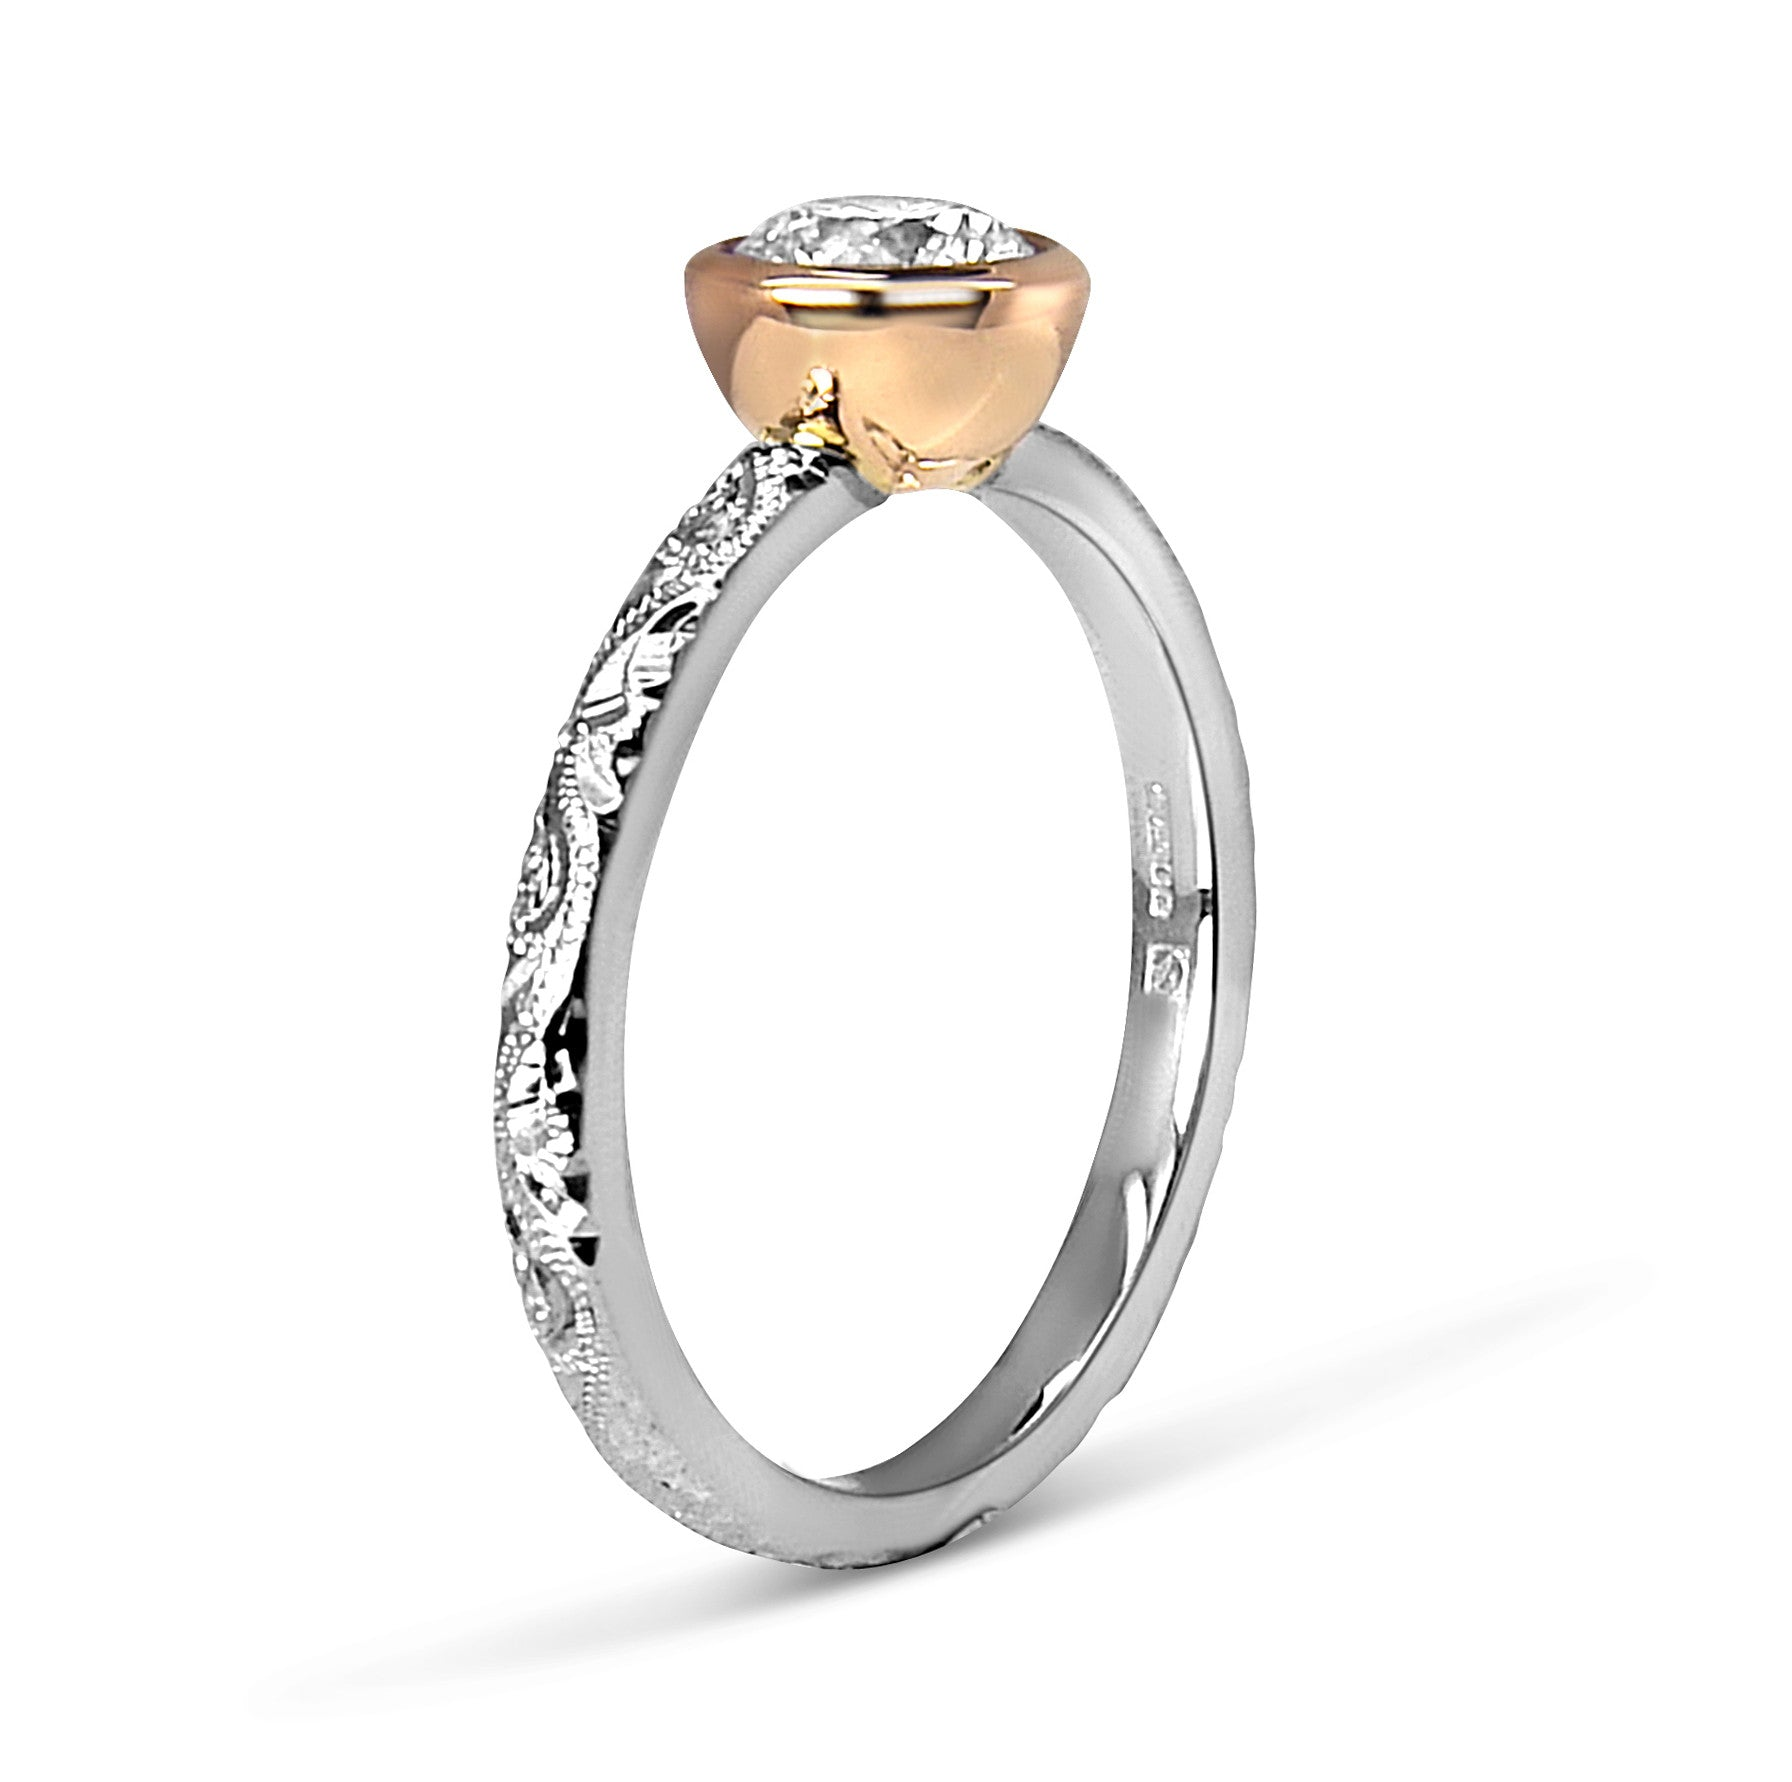 Bespoke Max and Gemma engagement ring - white and rose Fairtrade Gold, hand-engraved Scrolls and a Canadian diamond